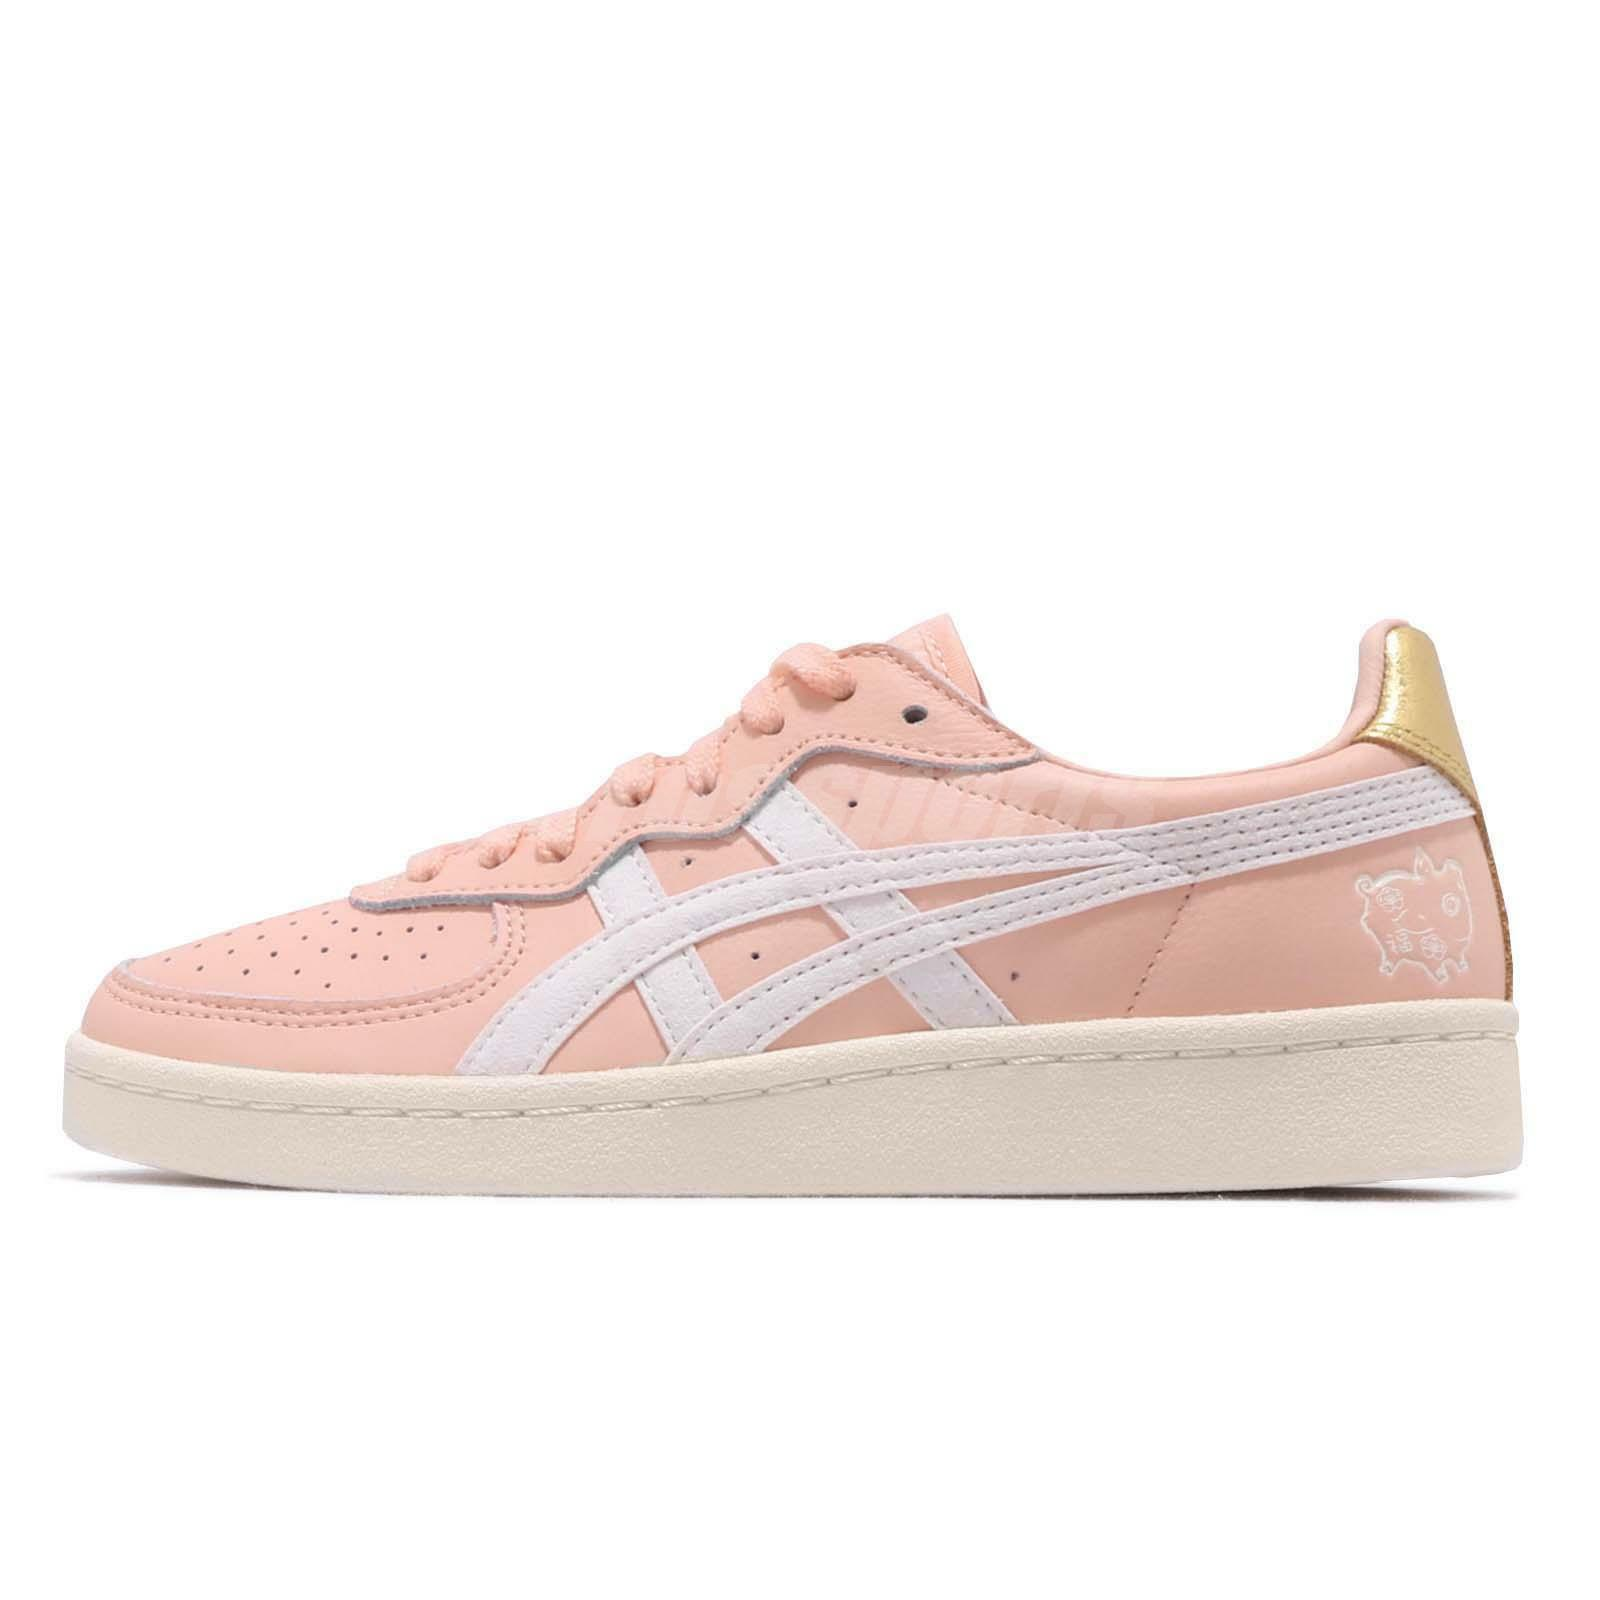 Asics Tiger GSM Breeze rosa oro CNY Year of the the the Pig donna scarpe 1183A367-704 8ed5d7